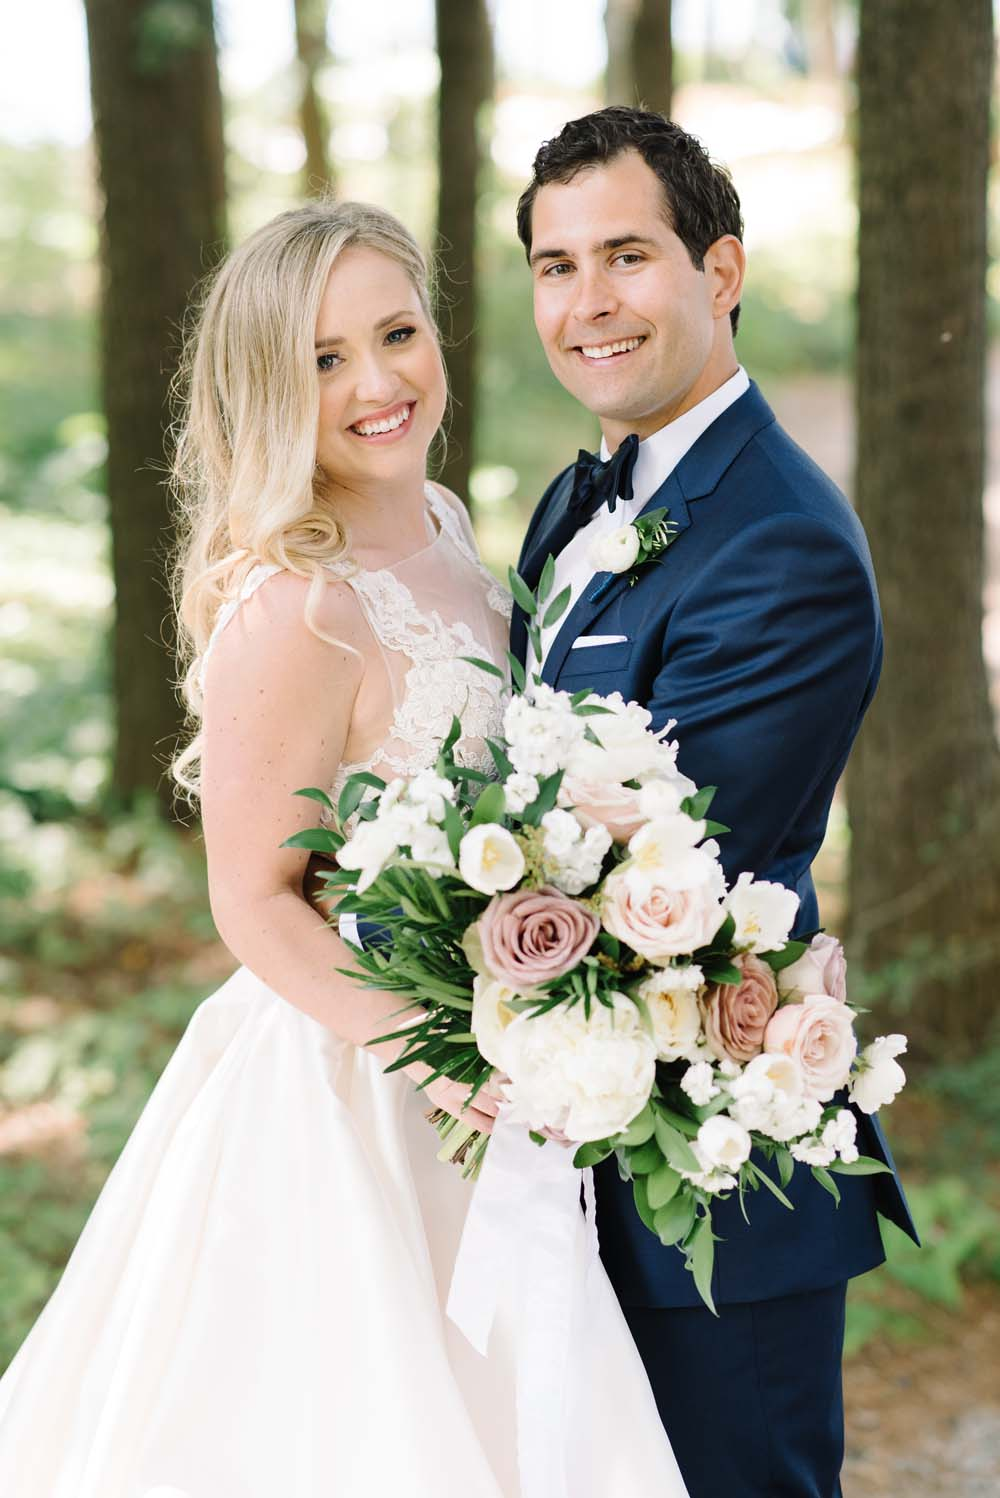 a romantic woodsy wedding in muskoka, ontario - bride and groom